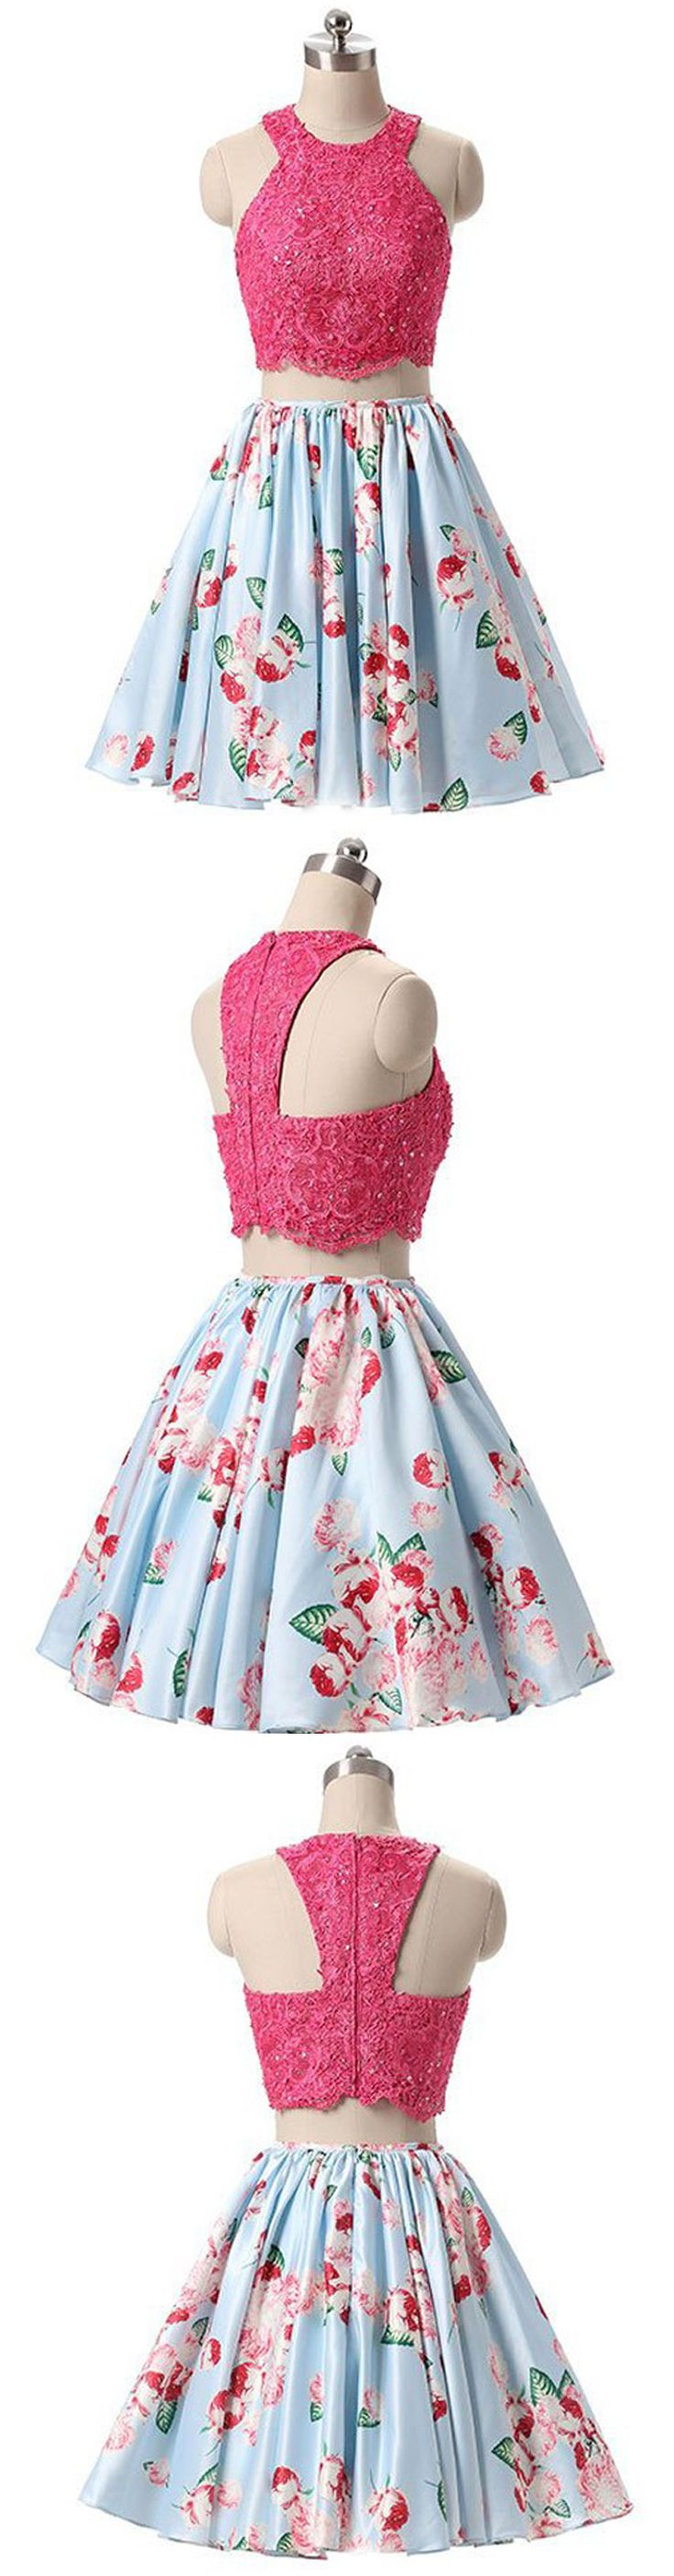 Two Piece Homecoming Dresses,Round Neck Homecoming Dresses,Short Homecoming Dresses,Blue Homecoming Dresses,Floral Homecoming Dresses,Beading Homecoming Dresses,Lace Homecoming Dresses,Homecoming Dresses 2017